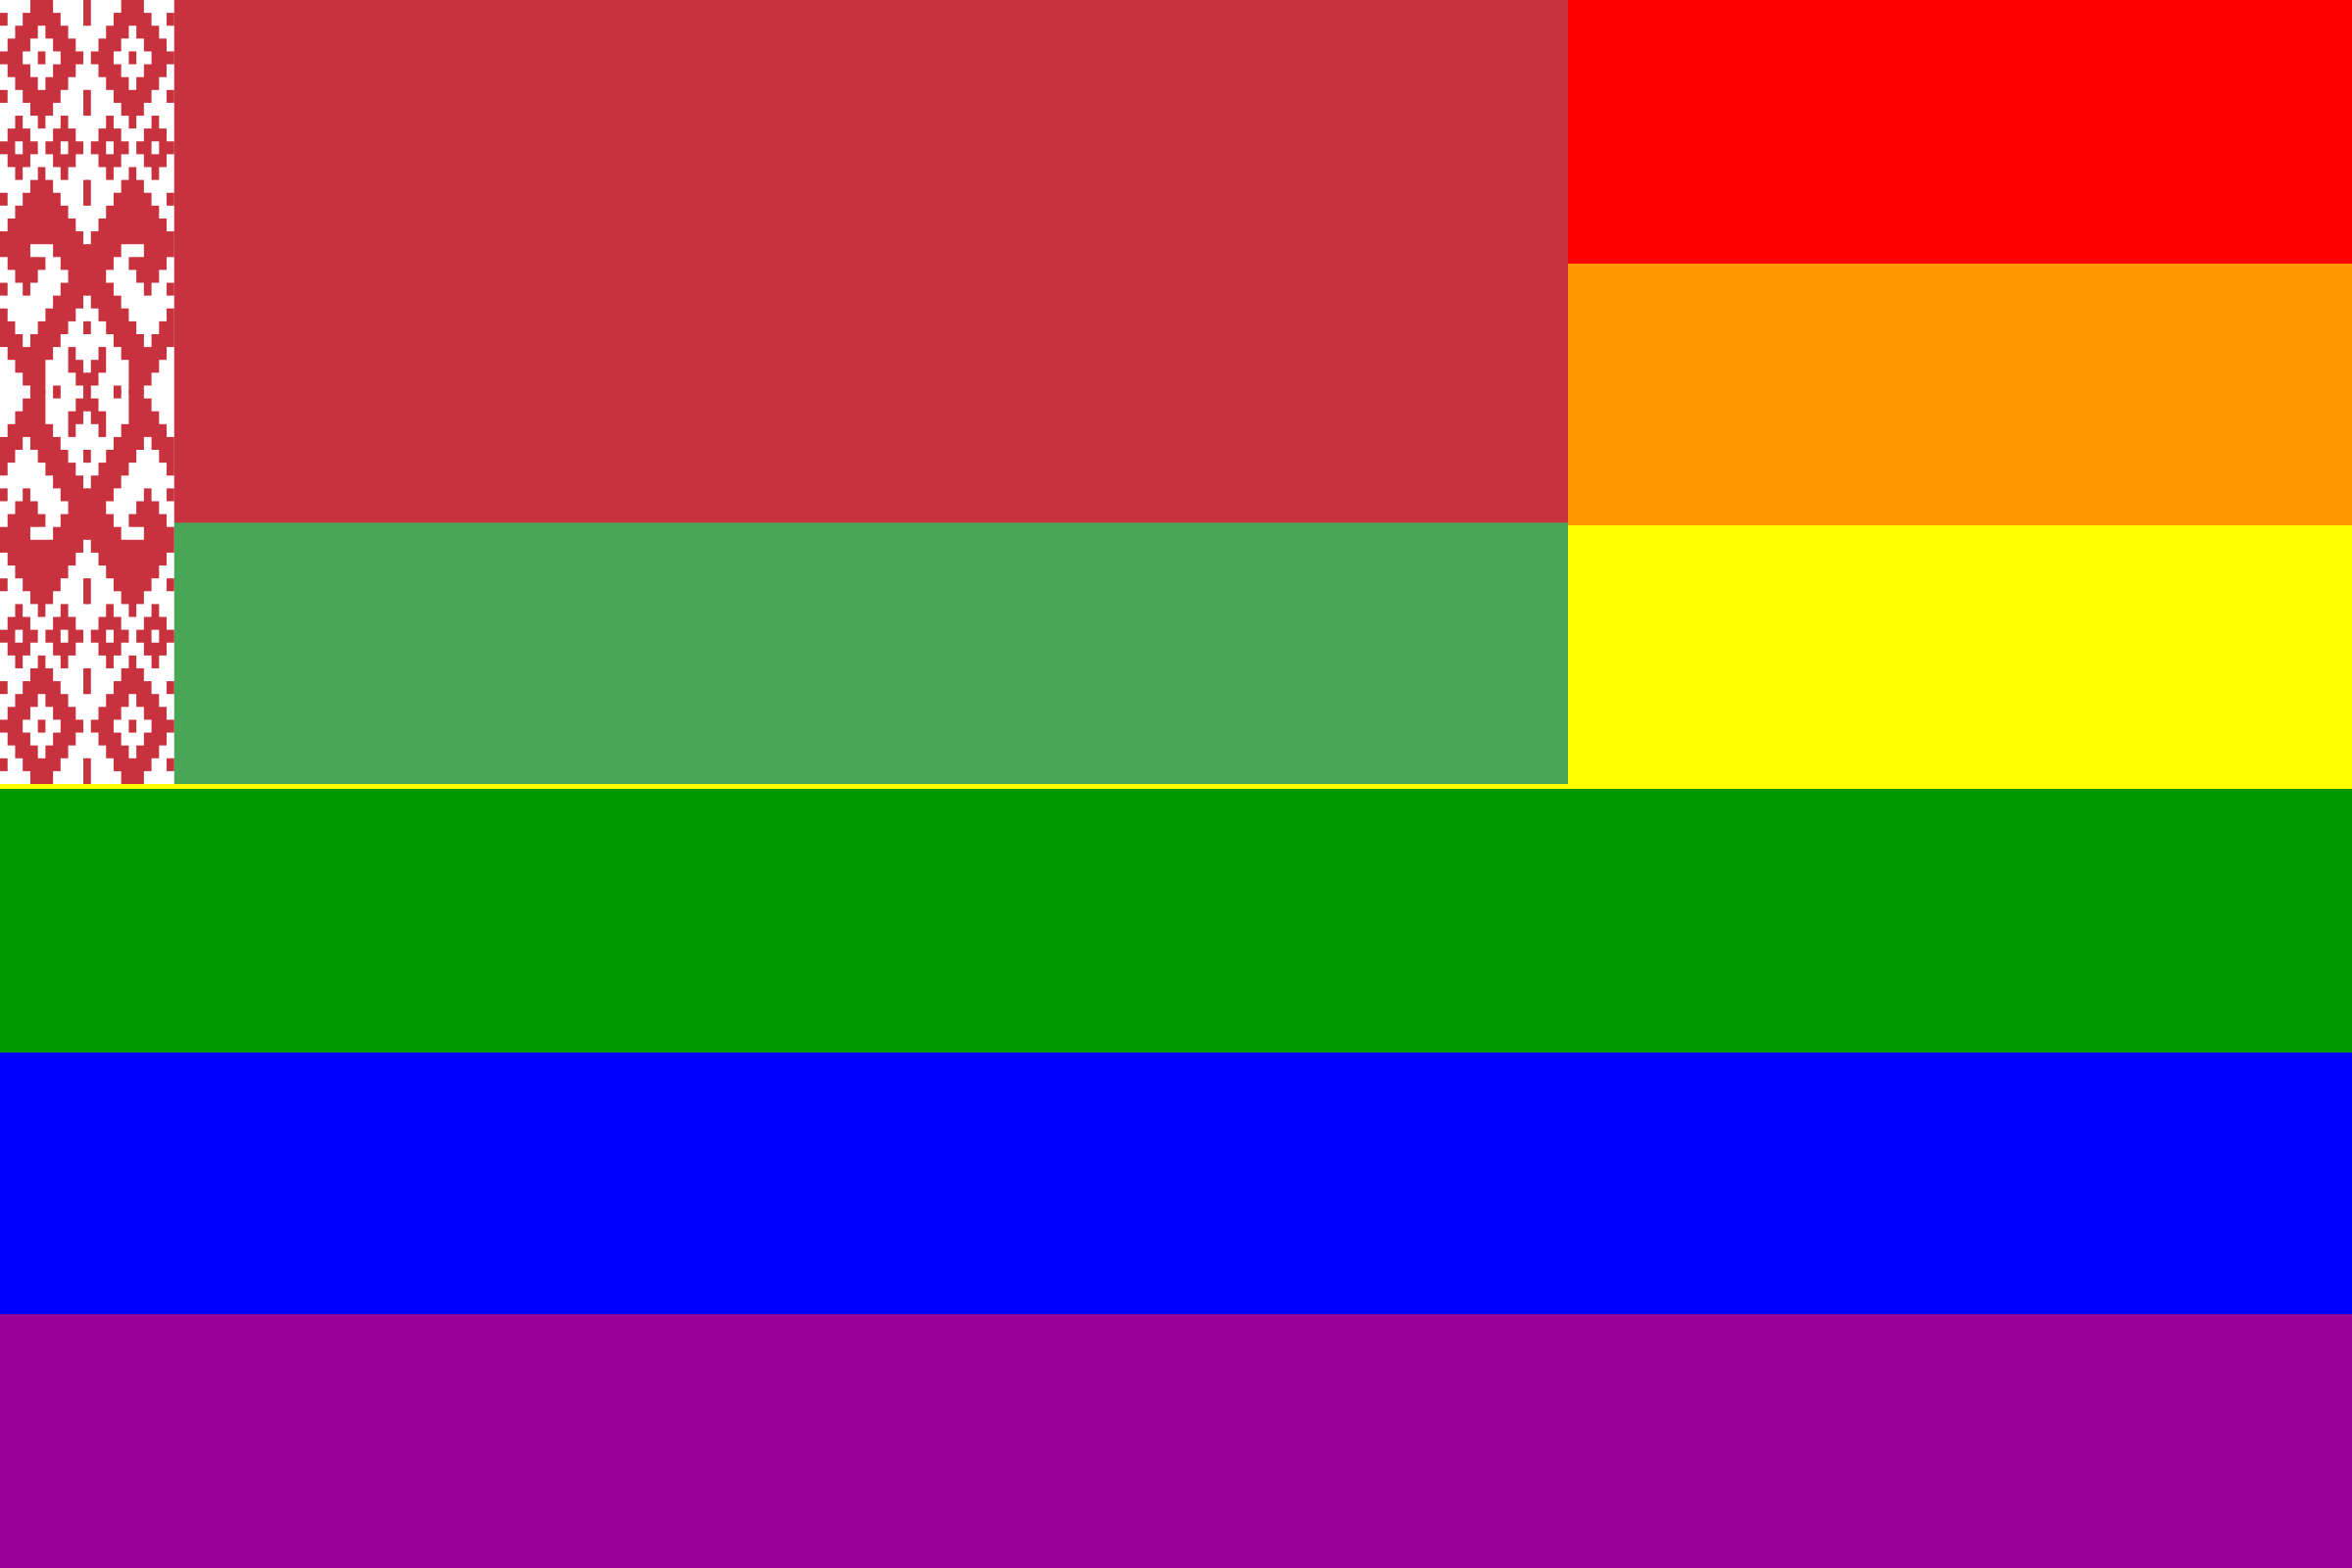 The Belarus Rainbow Flag by AdamStanislav